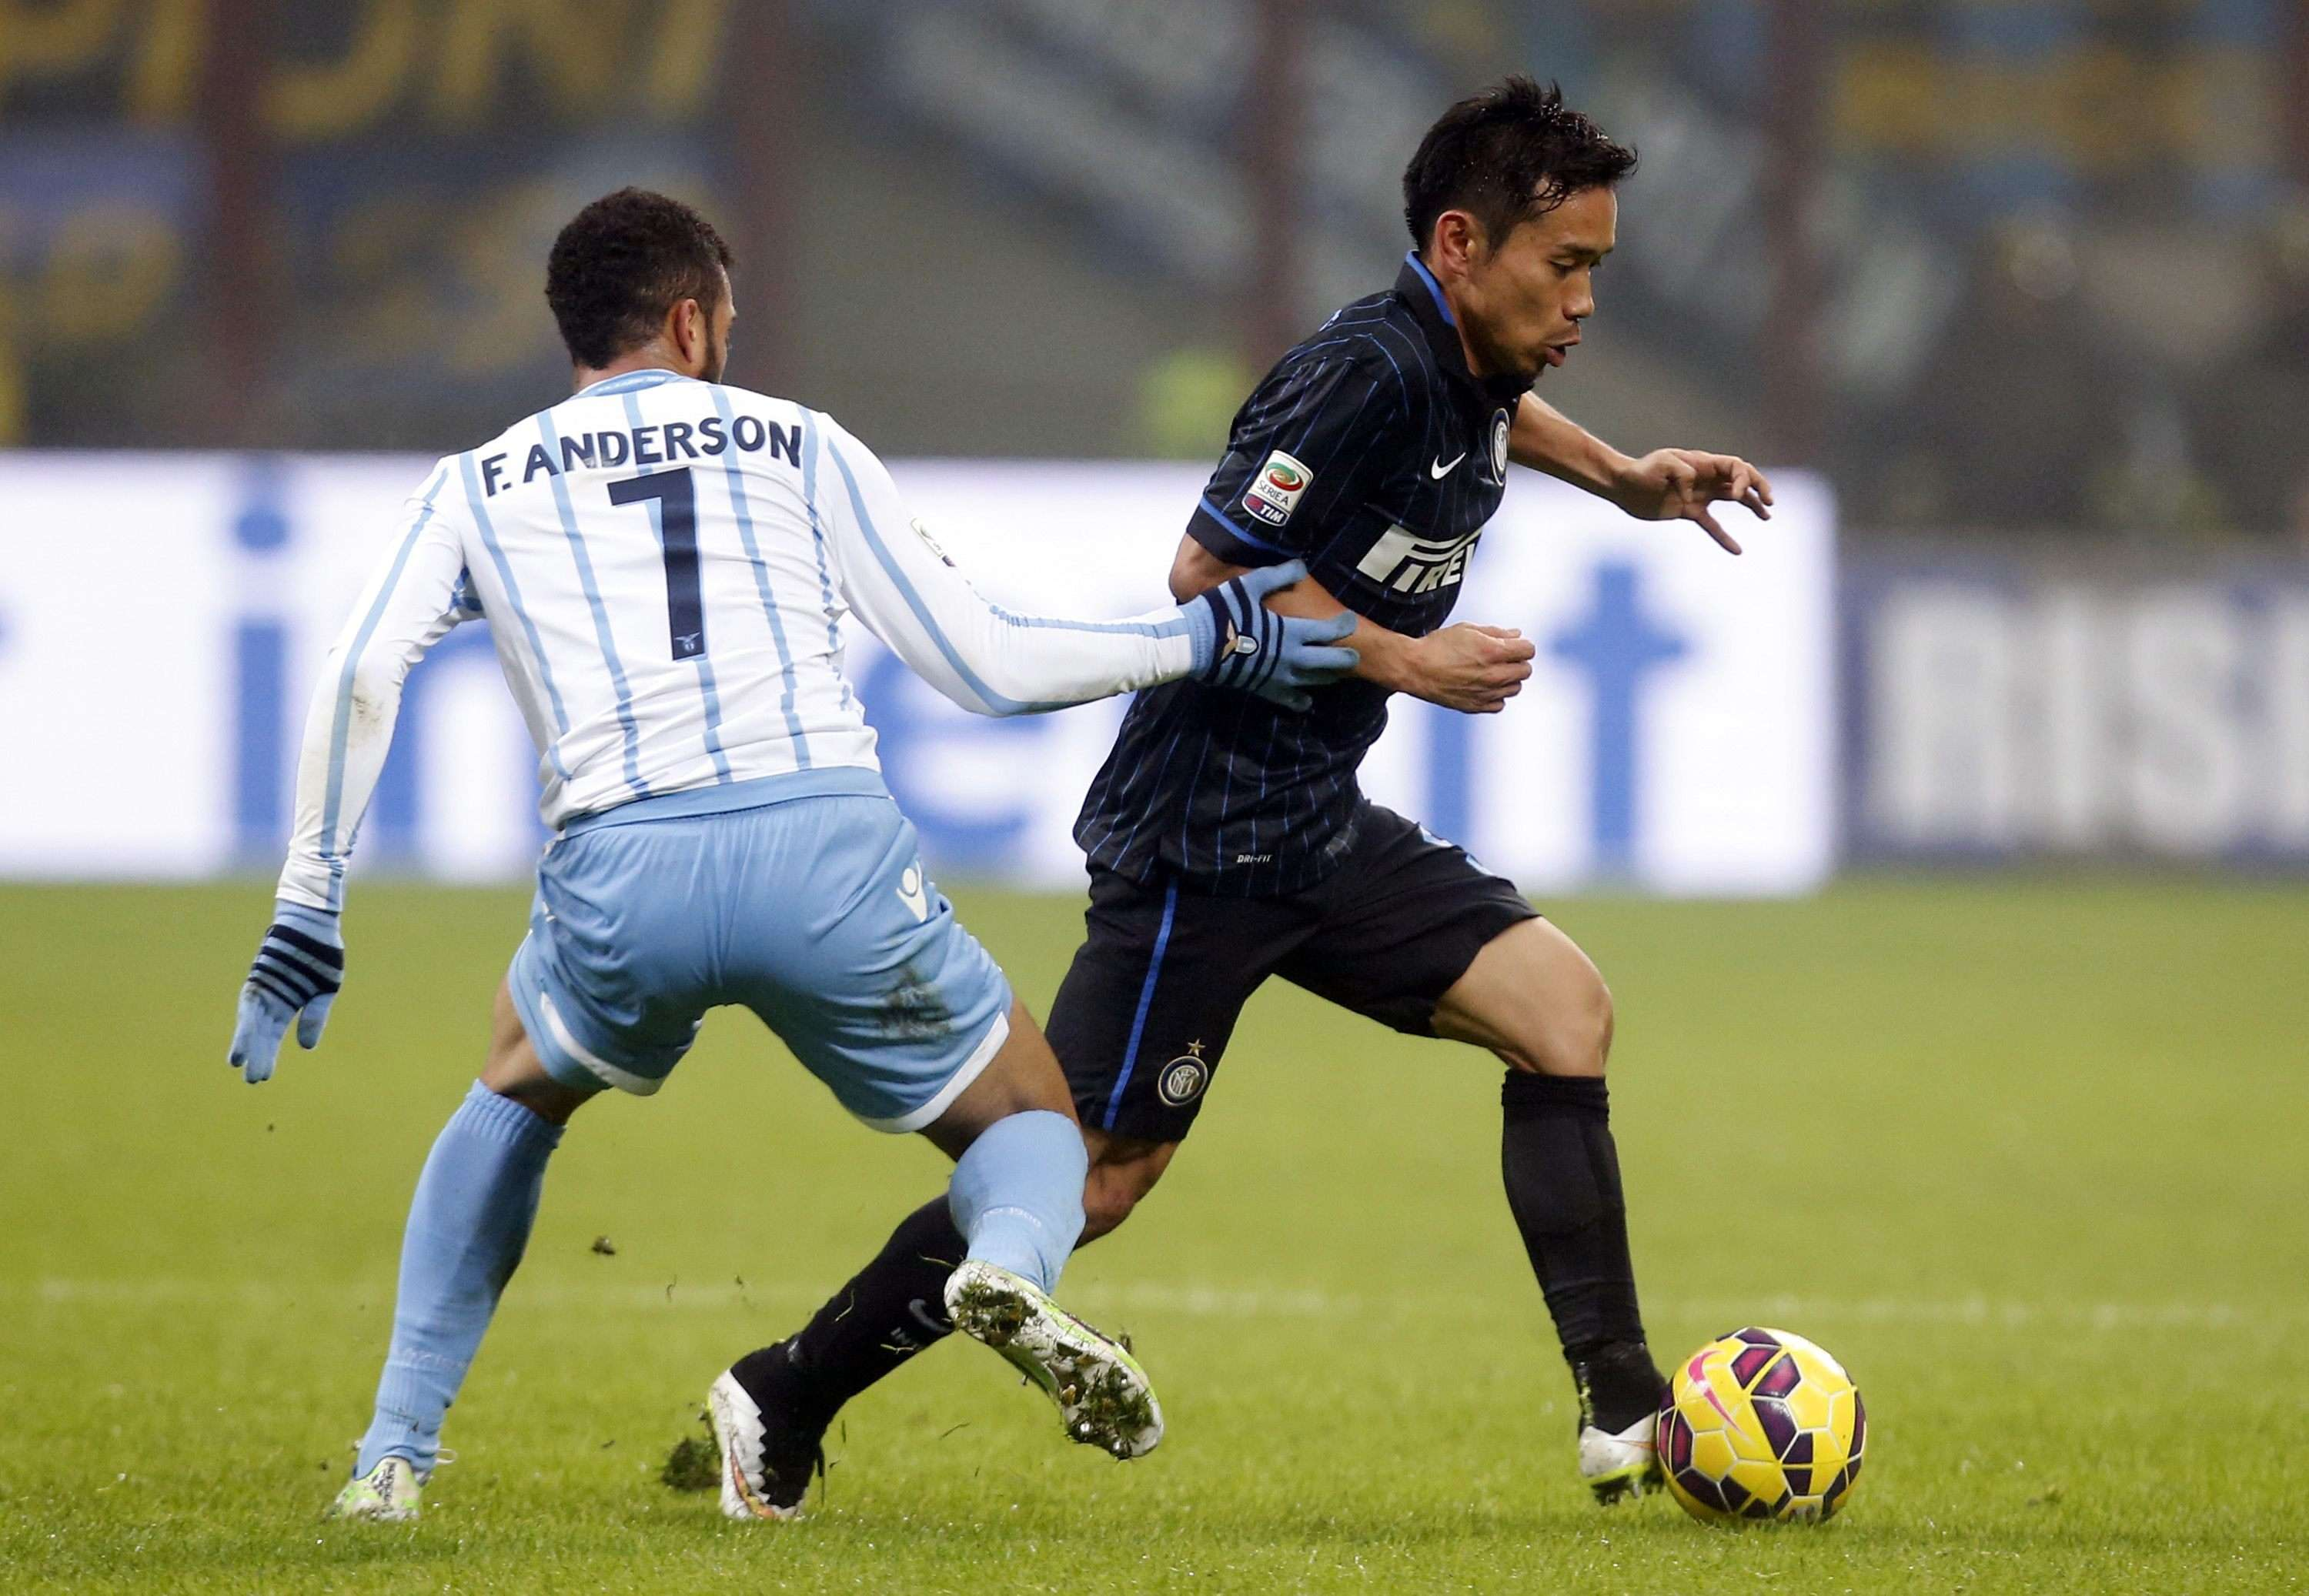 Inter Milan's Yuto Nagatomo (R) fights for the ball with Lazio's Felipe Anderson during their Italian Serie A soccer match at the San Siro stadium in Milan December 21, 2014. REUTERS/Alessandro Garofalo (ITALY - Tags: SPORT SOCCER) Foto: ALESSANDRO GAROFALO/REUTERS